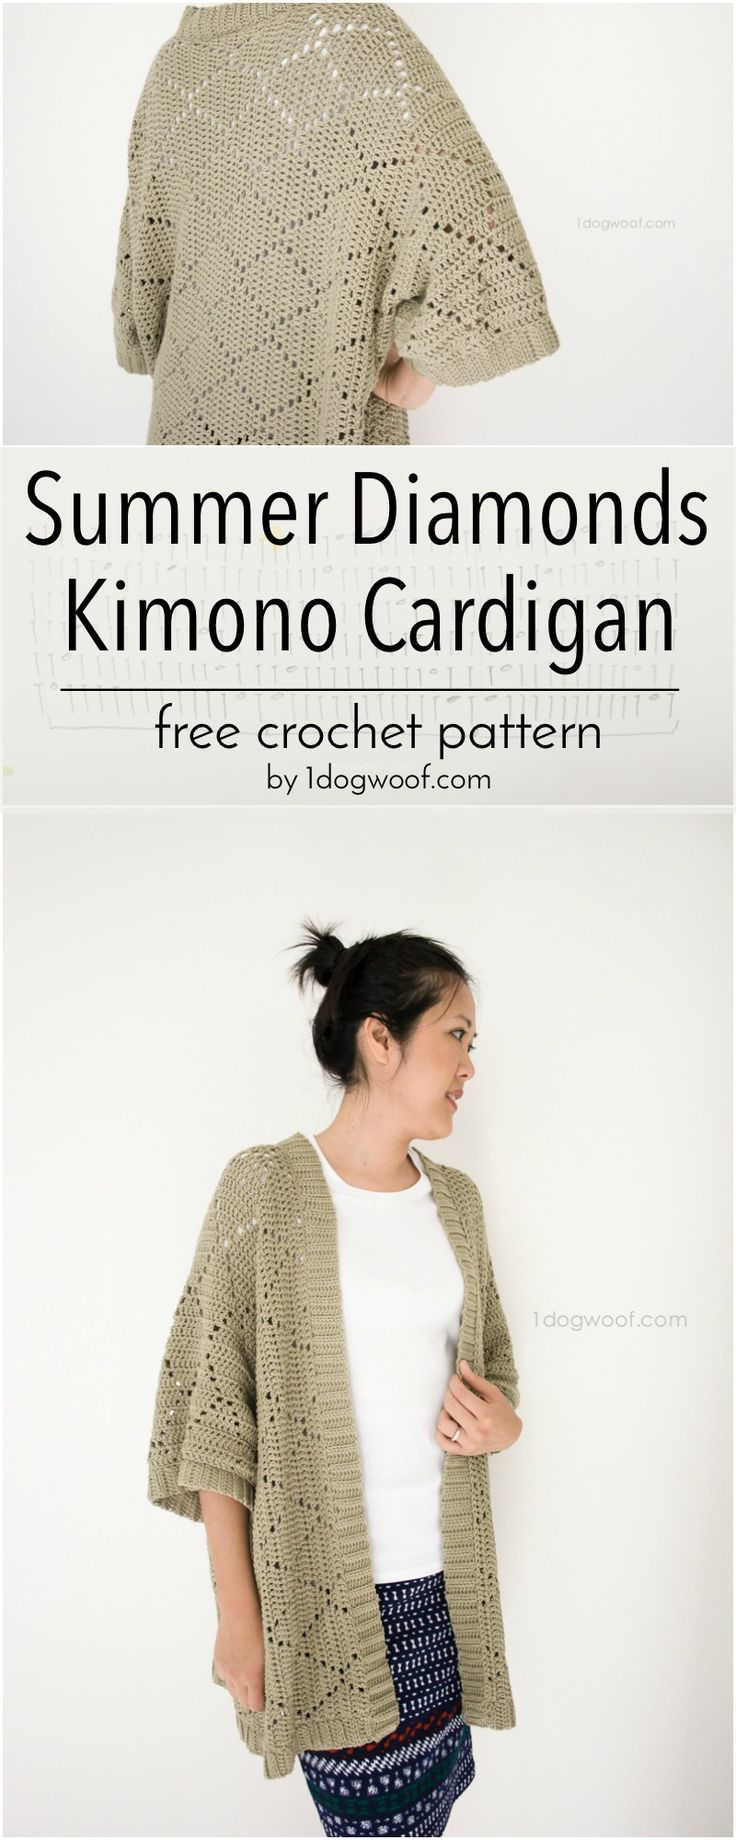 Free crochet pattern for a light summer cardigan, featuring a simple diamond motif. | 1dogwoof.com